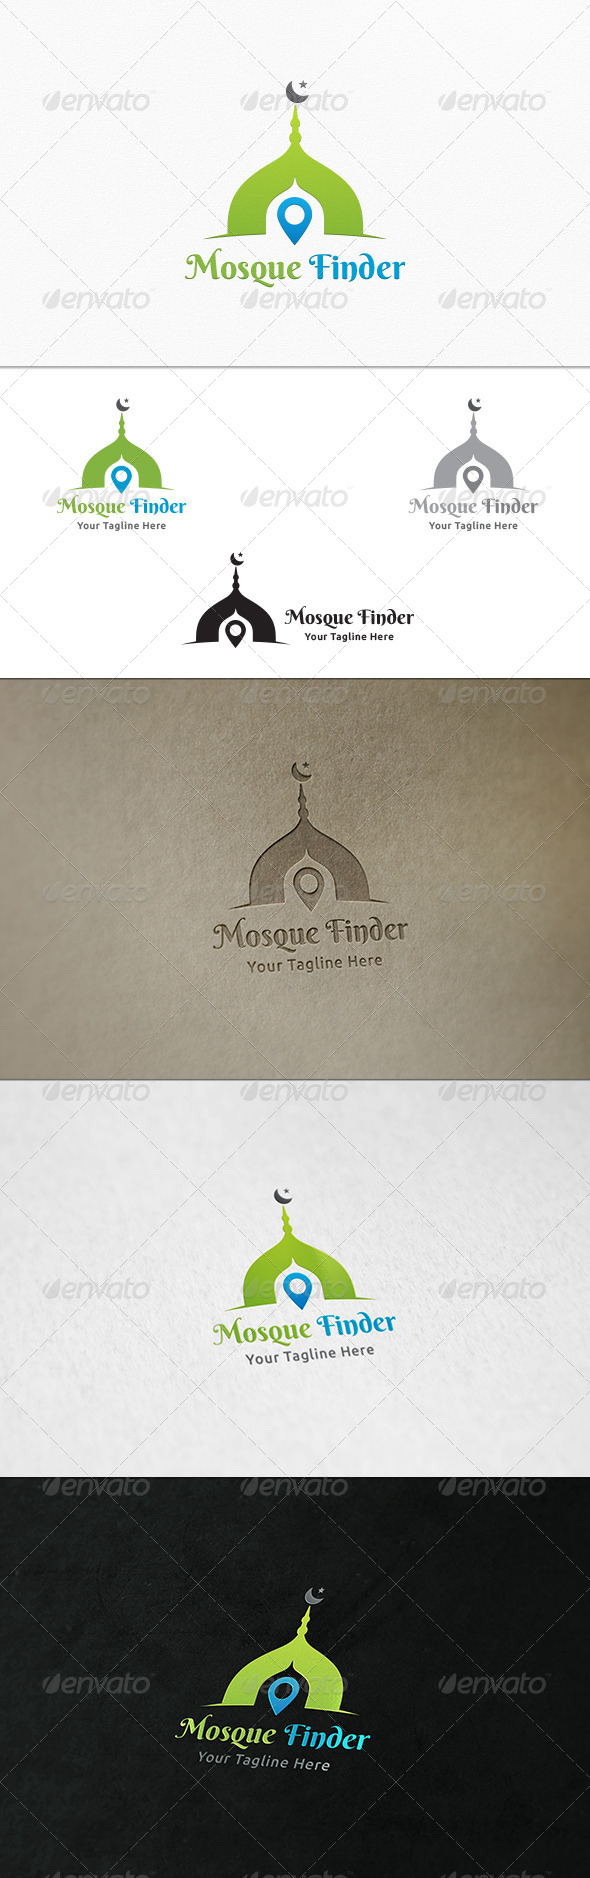 GraphicRiver Mosque Finder Logo Template 7314782